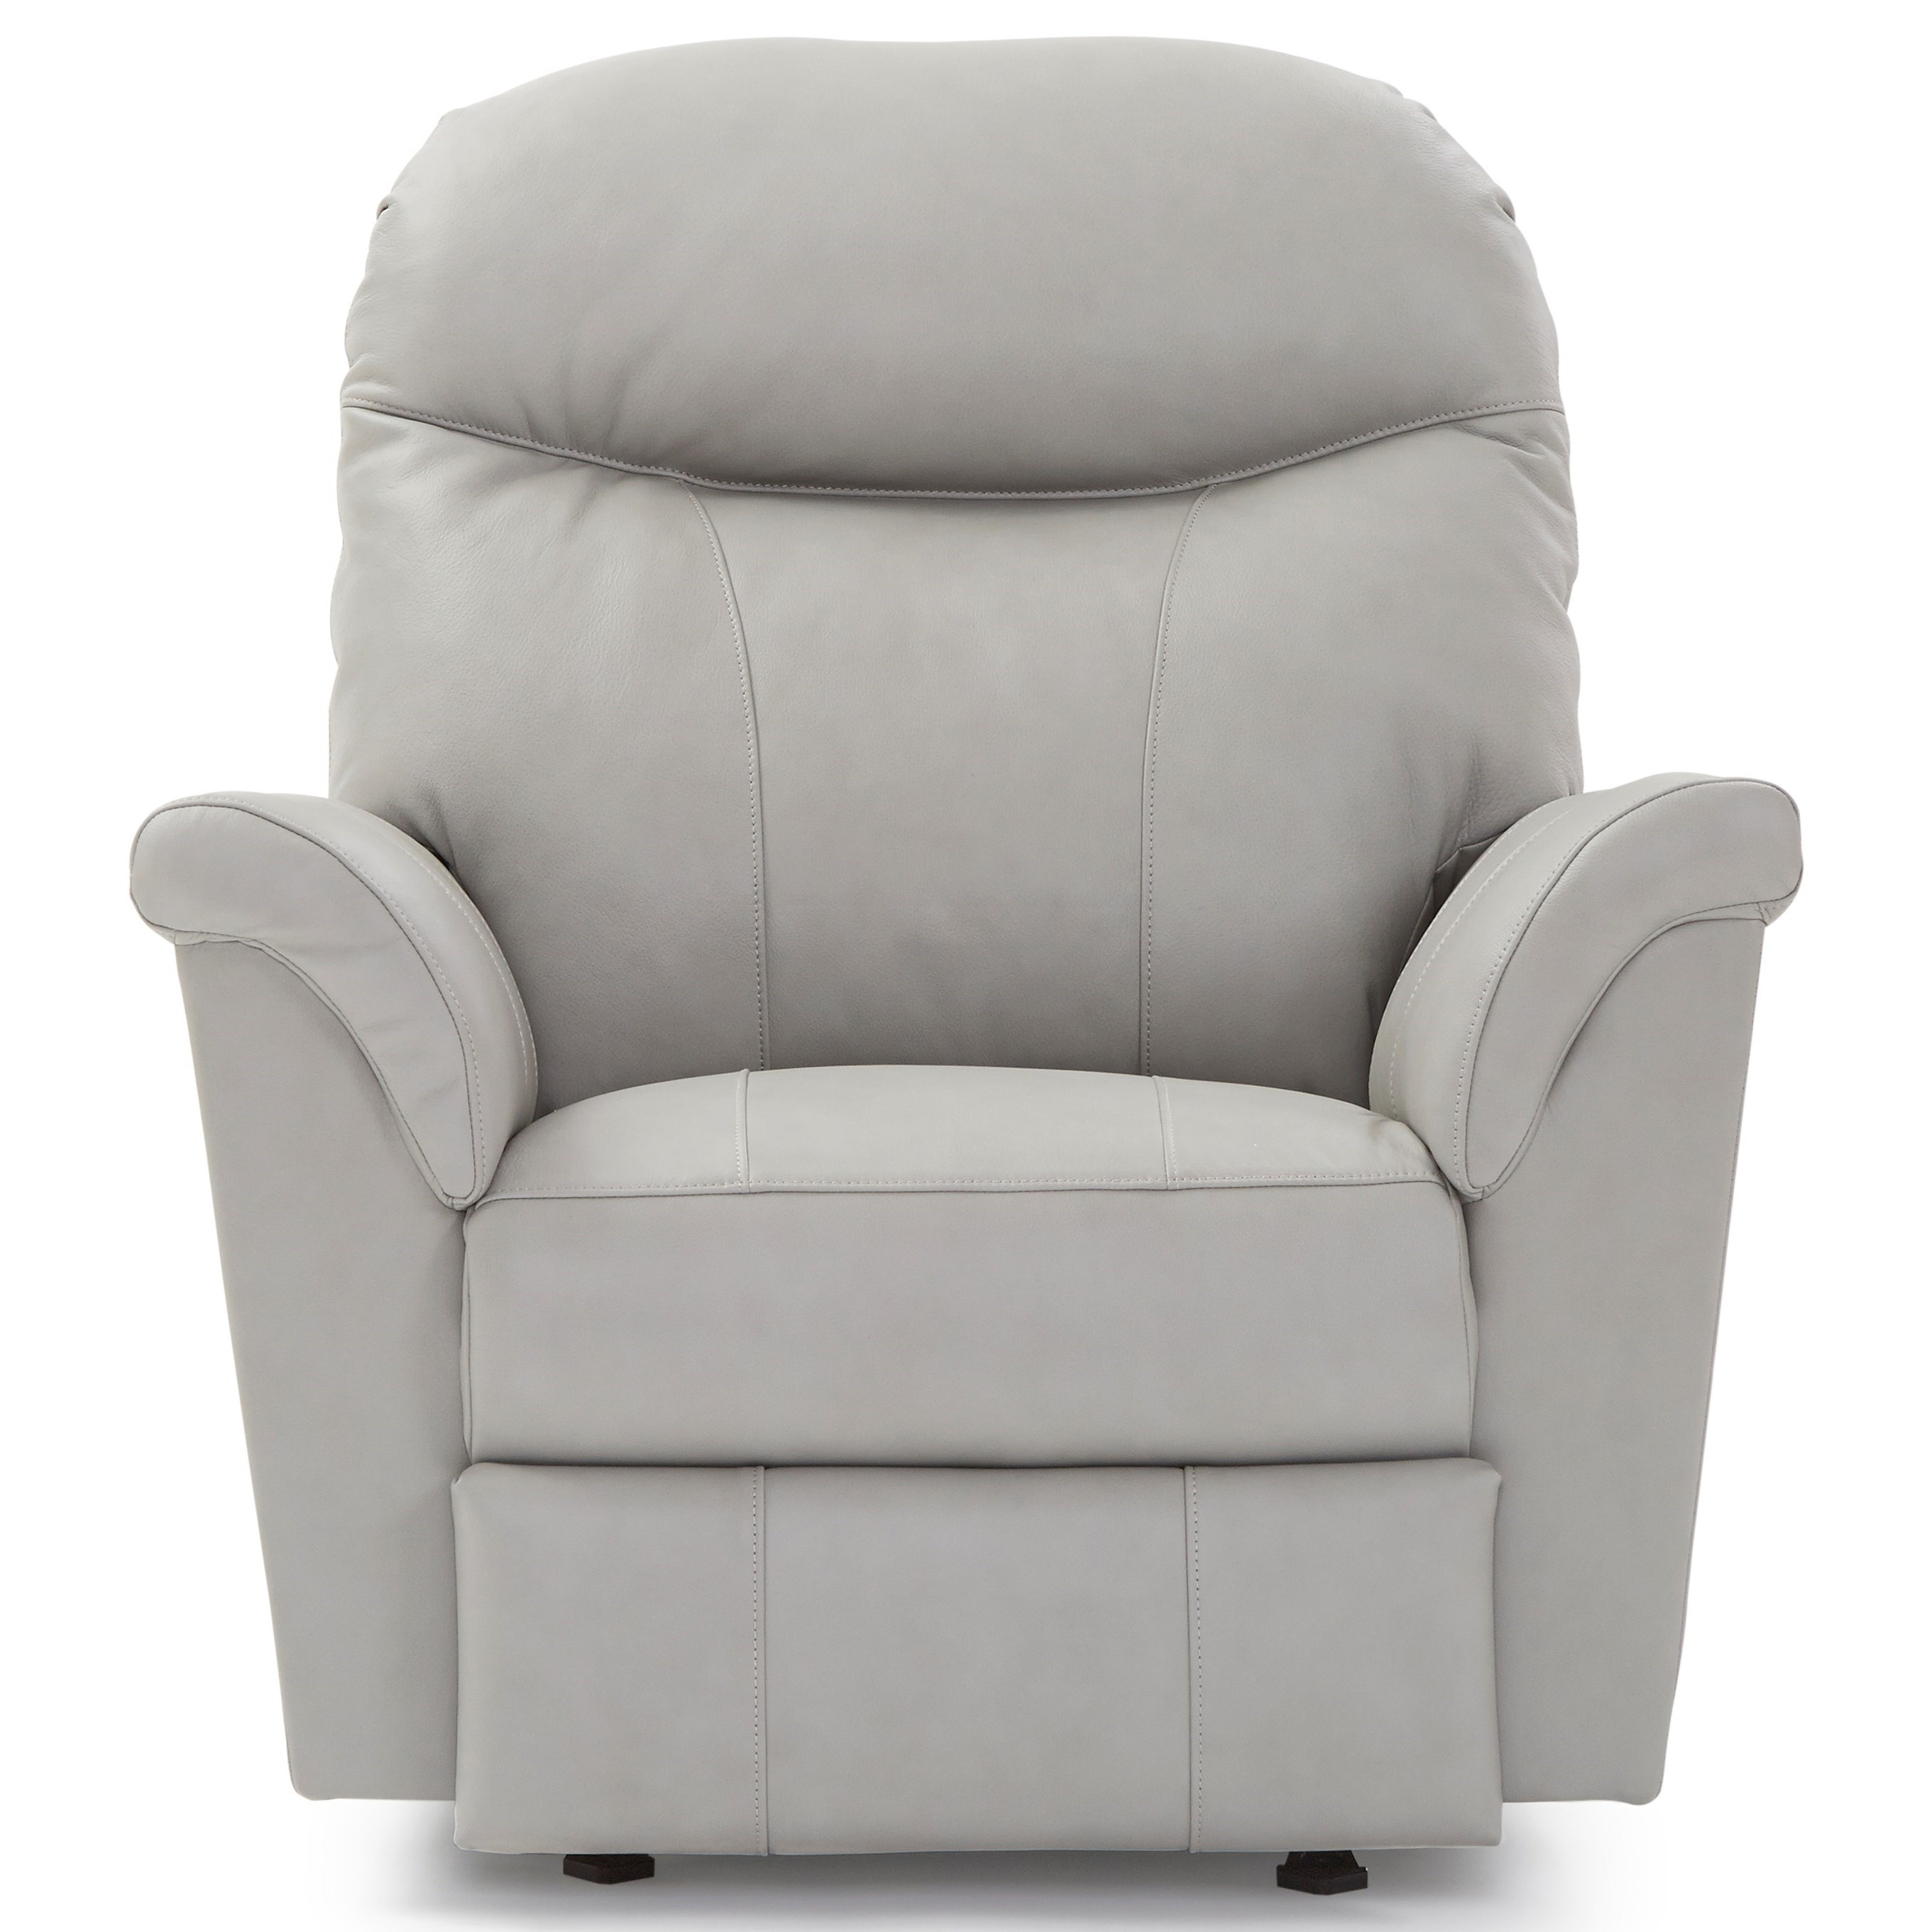 Caitlin Rocker Recliner by Best Home Furnishings at Best Home Furnishings